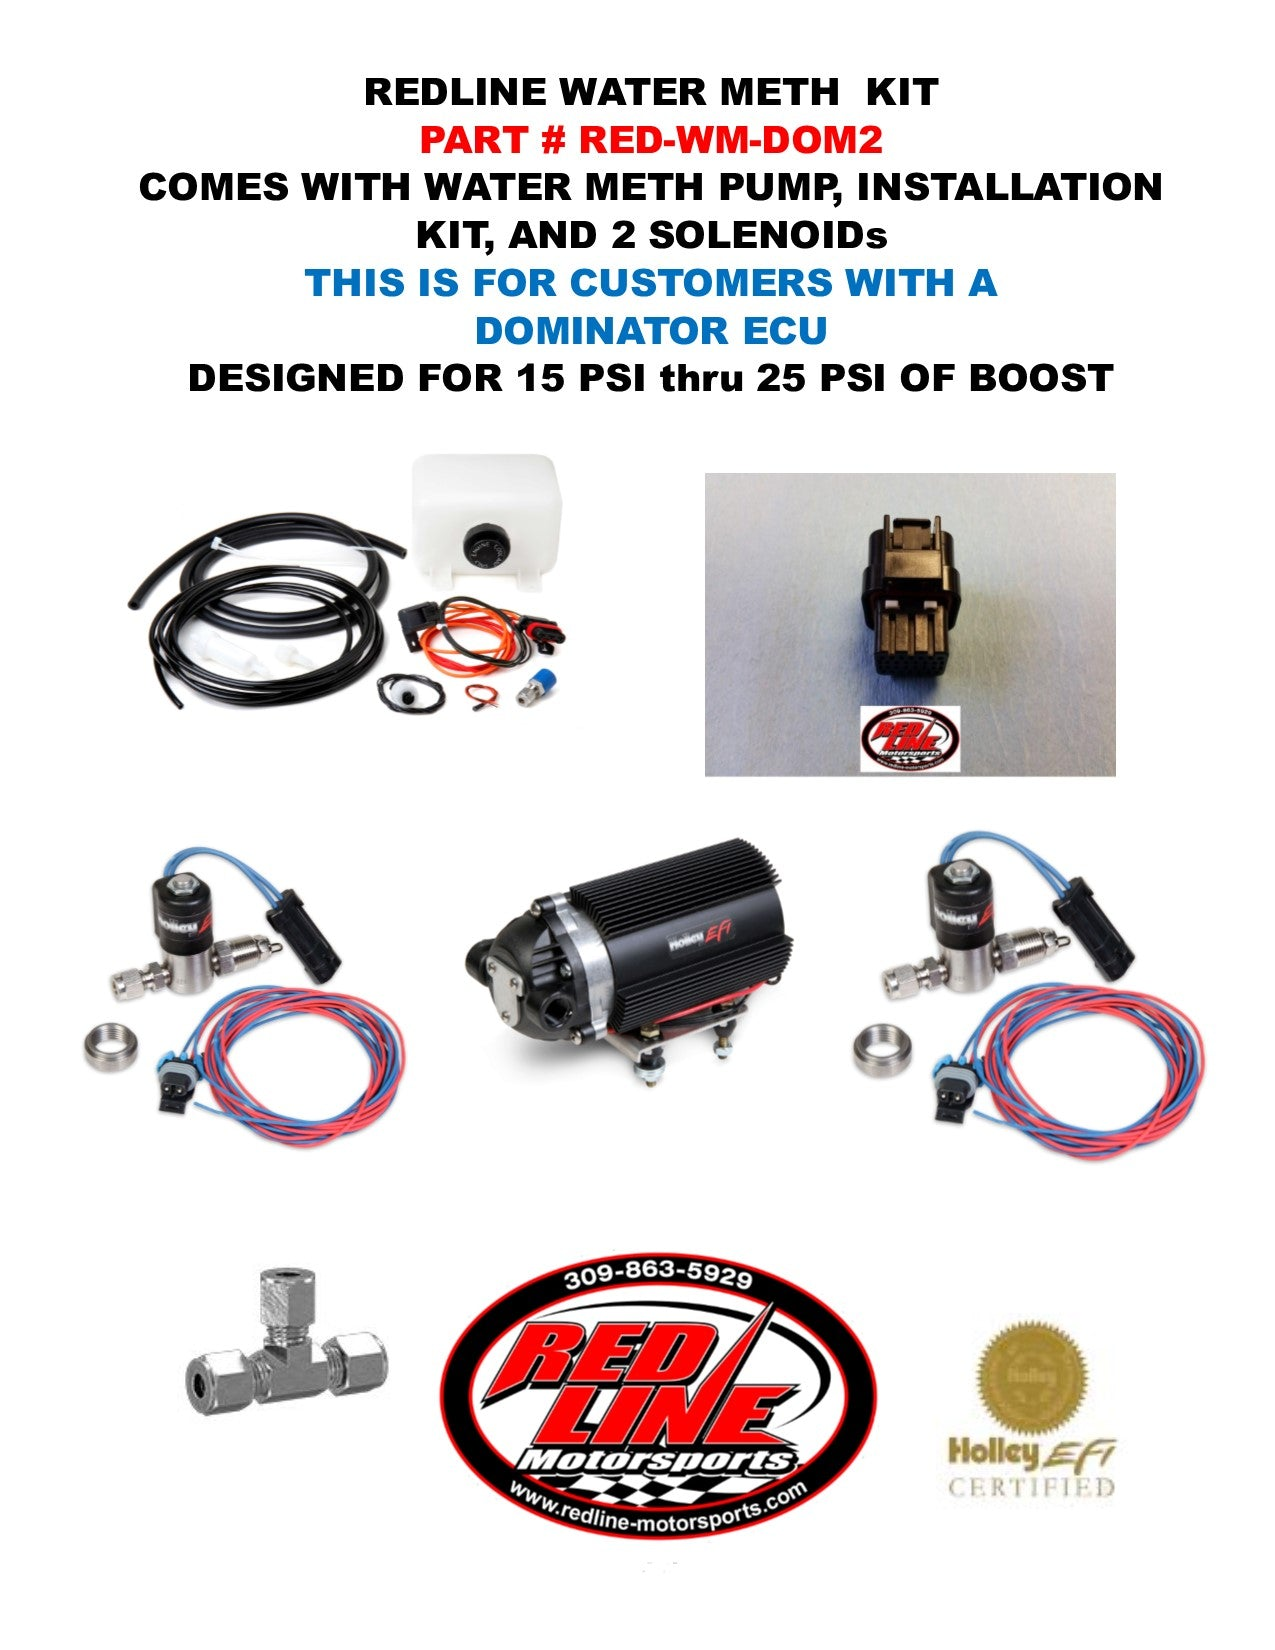 REDLINE WATER/METH KIT FOR HOLLEY DOMINATOR COMPUTERS WITH 2 SOLENOIDS (15 PSI TO 25 PSI)